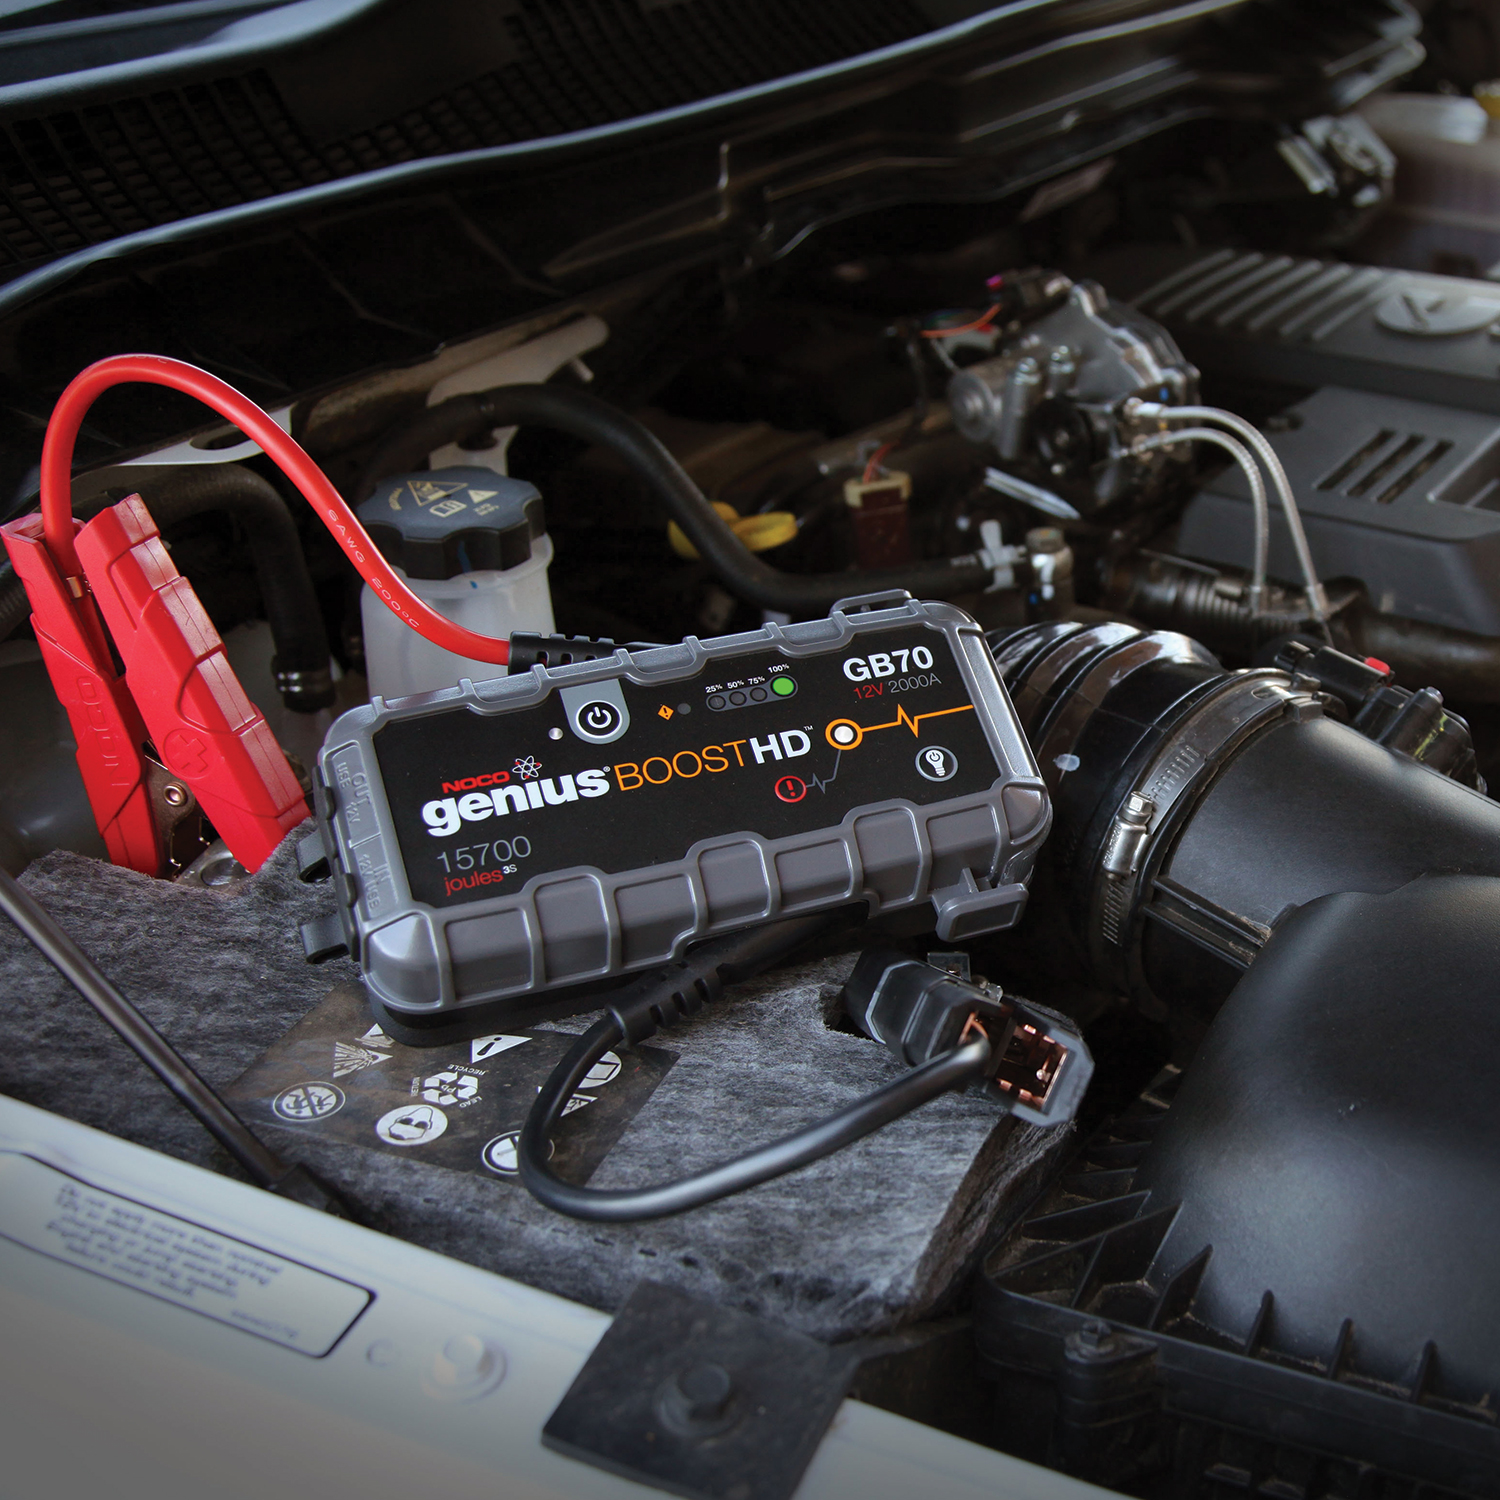 blog 5 things you didn t know your gb70 jump starter could do rh no co Car ManualsOnline Car Alarm Product Manuals